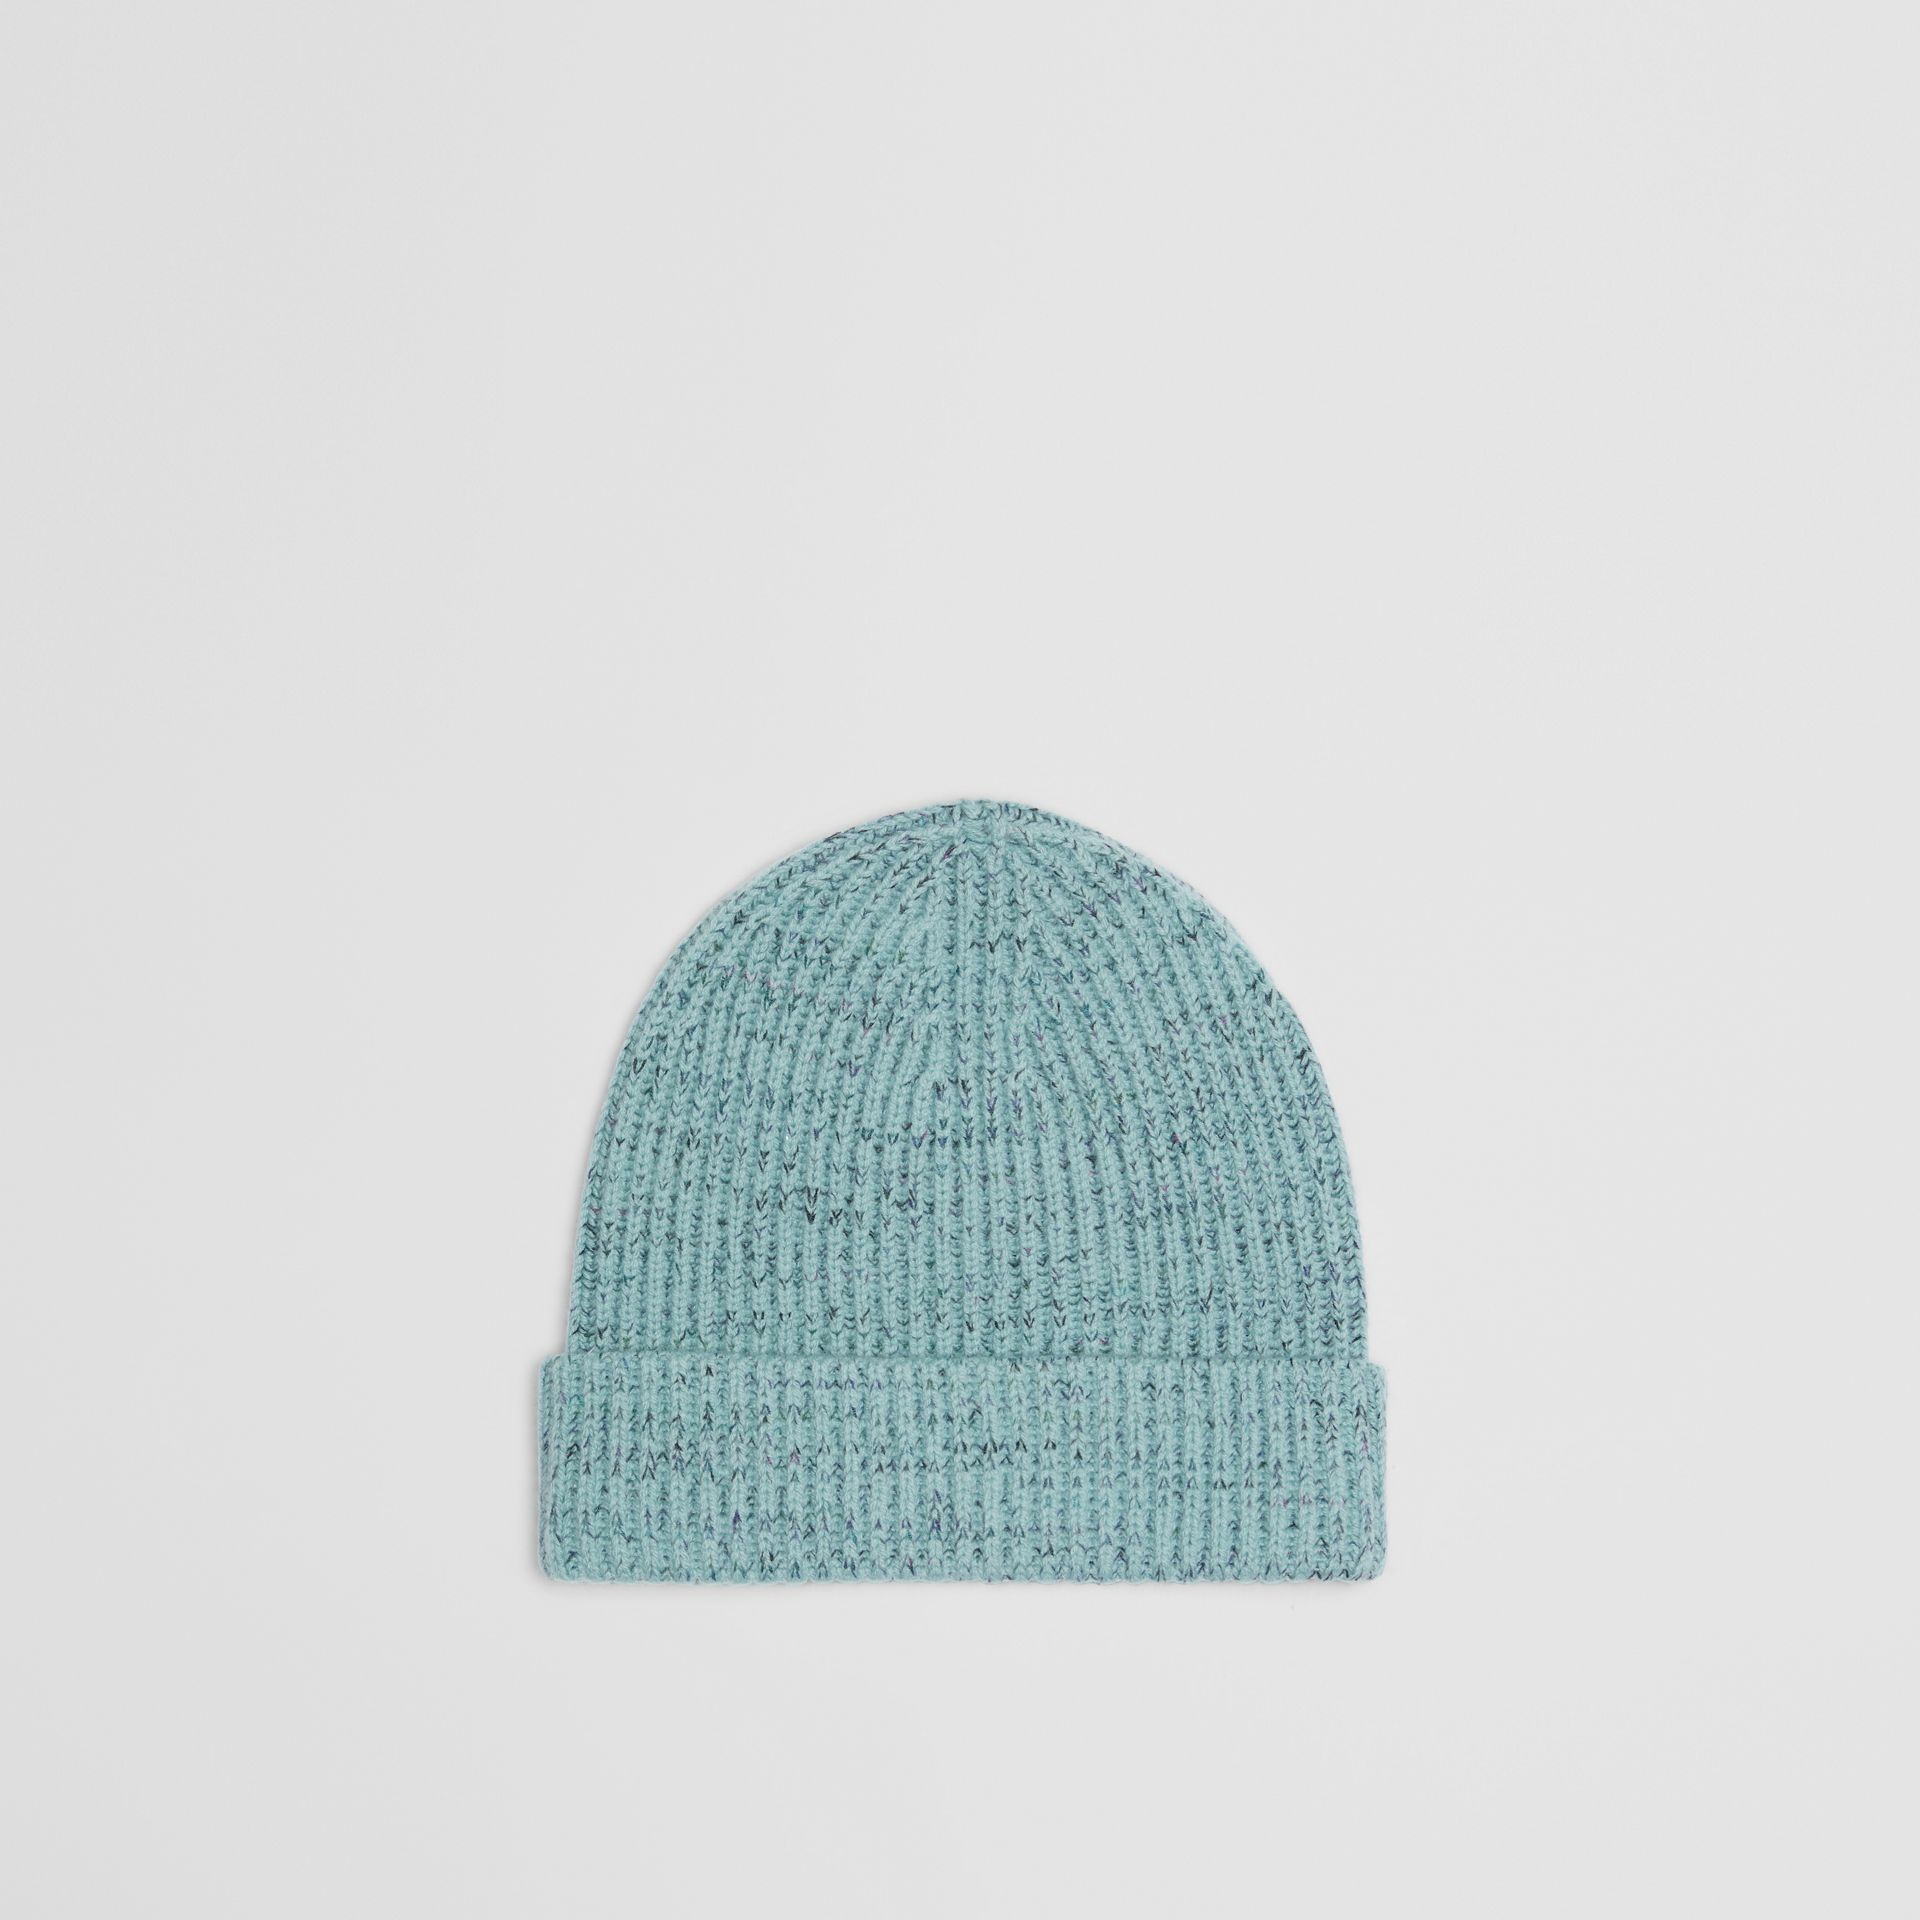 Embroidered Archive Logo Wool Blend Beanie in Blue Topaz | Burberry - gallery image 4